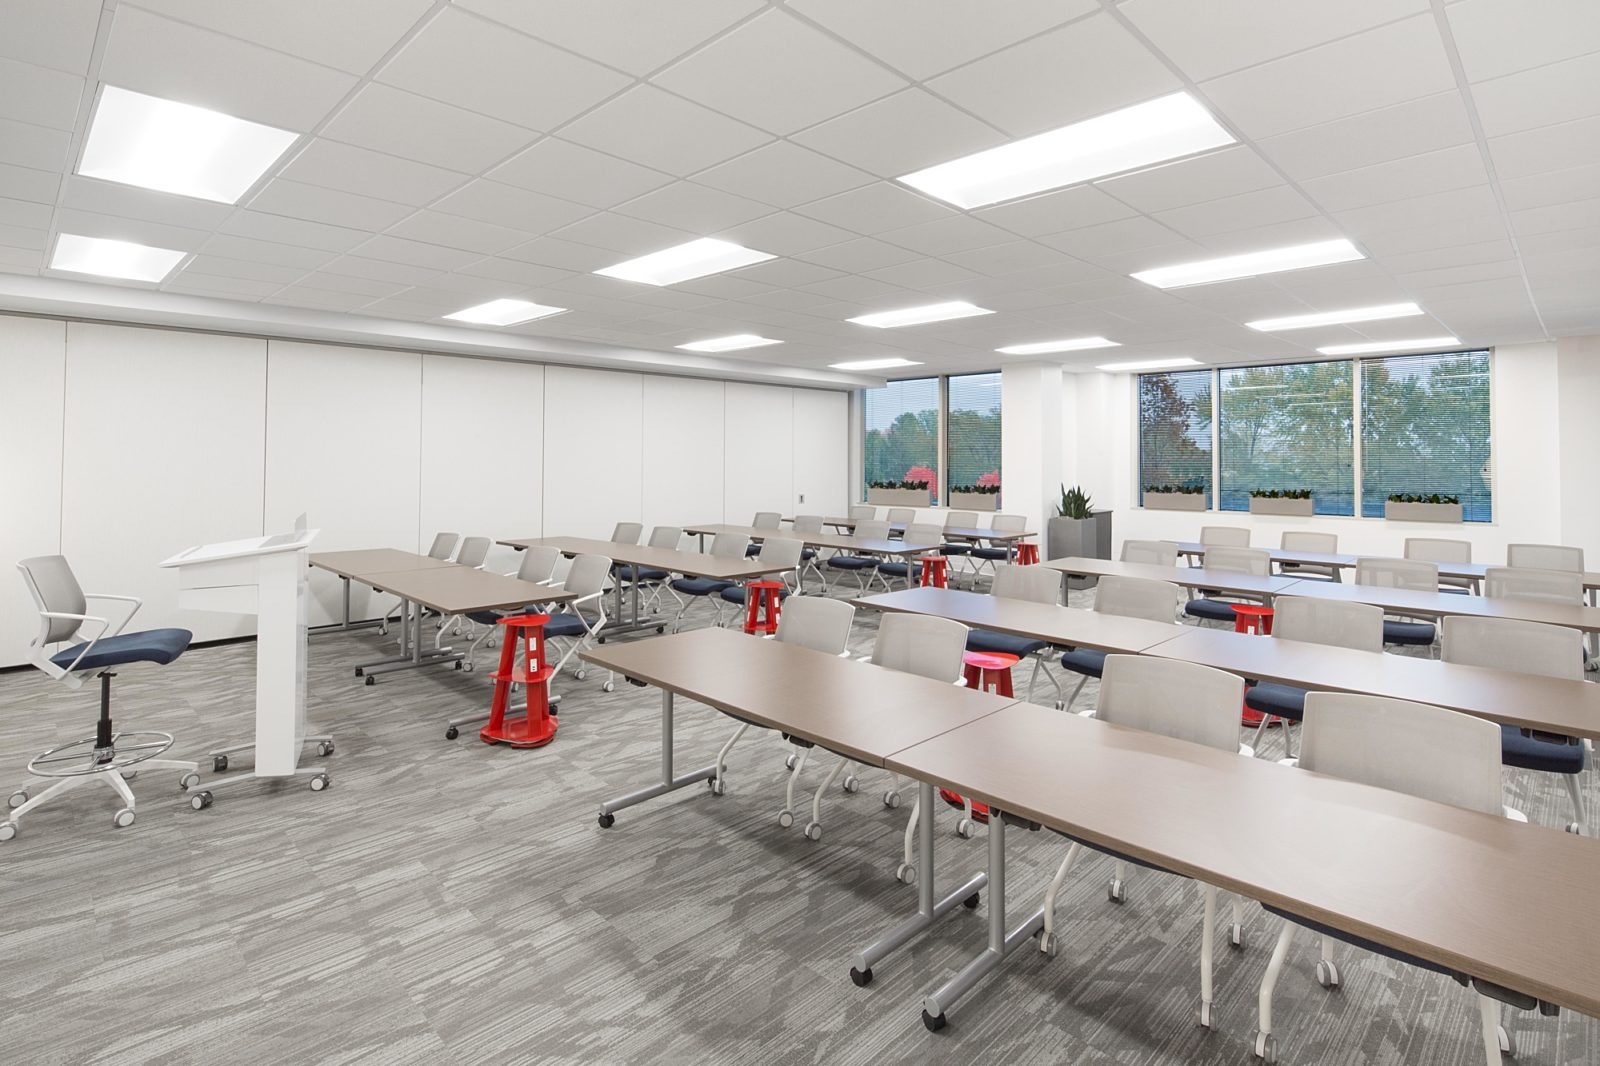 INCPAS Project Highlight: Training room